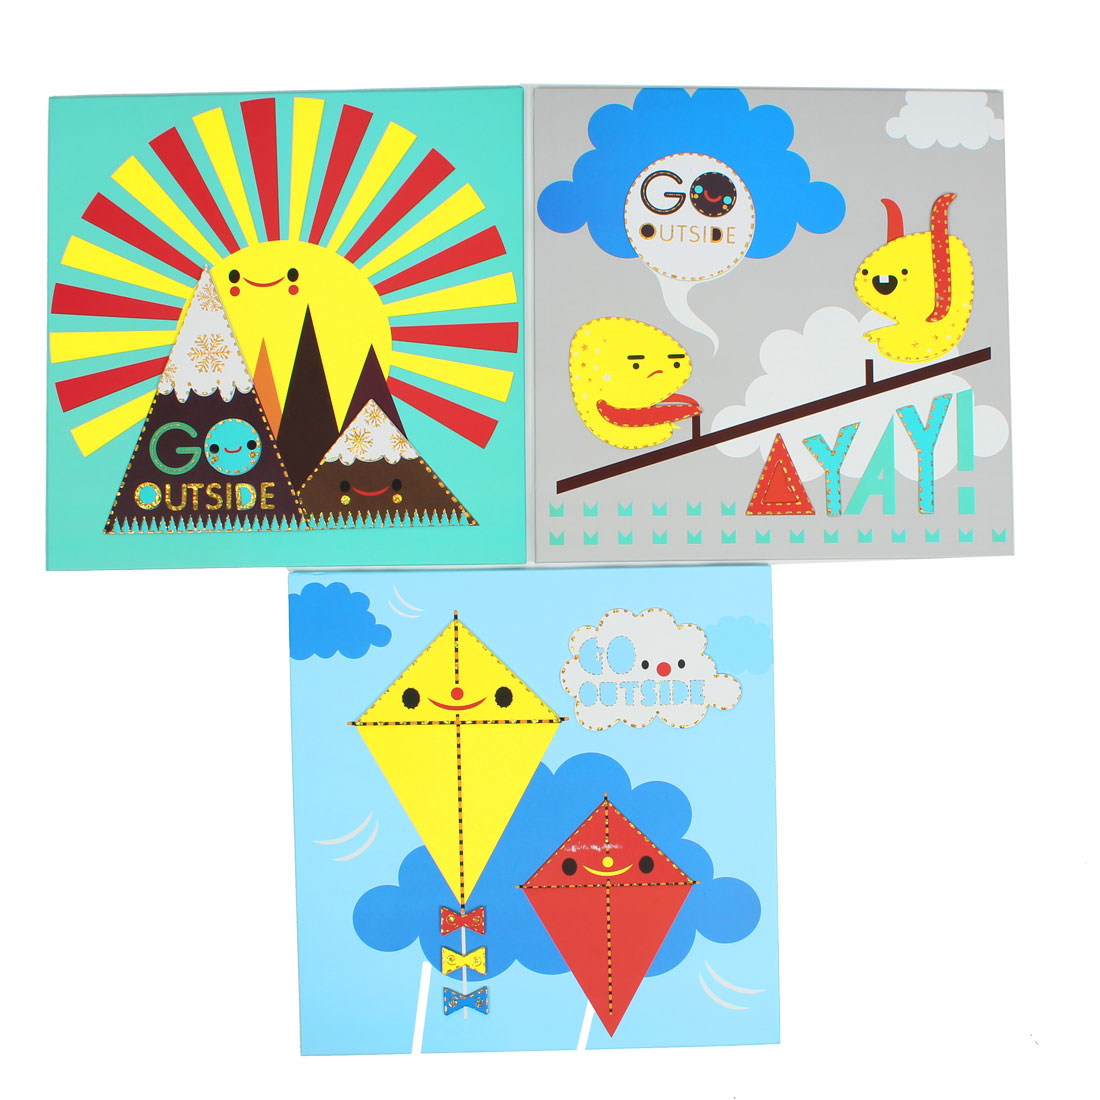 3 Pcs 30cm x 30cm Cartoon Outside Scenery Printed Paintings Tiles Wall Decor Hard Paper Sticker